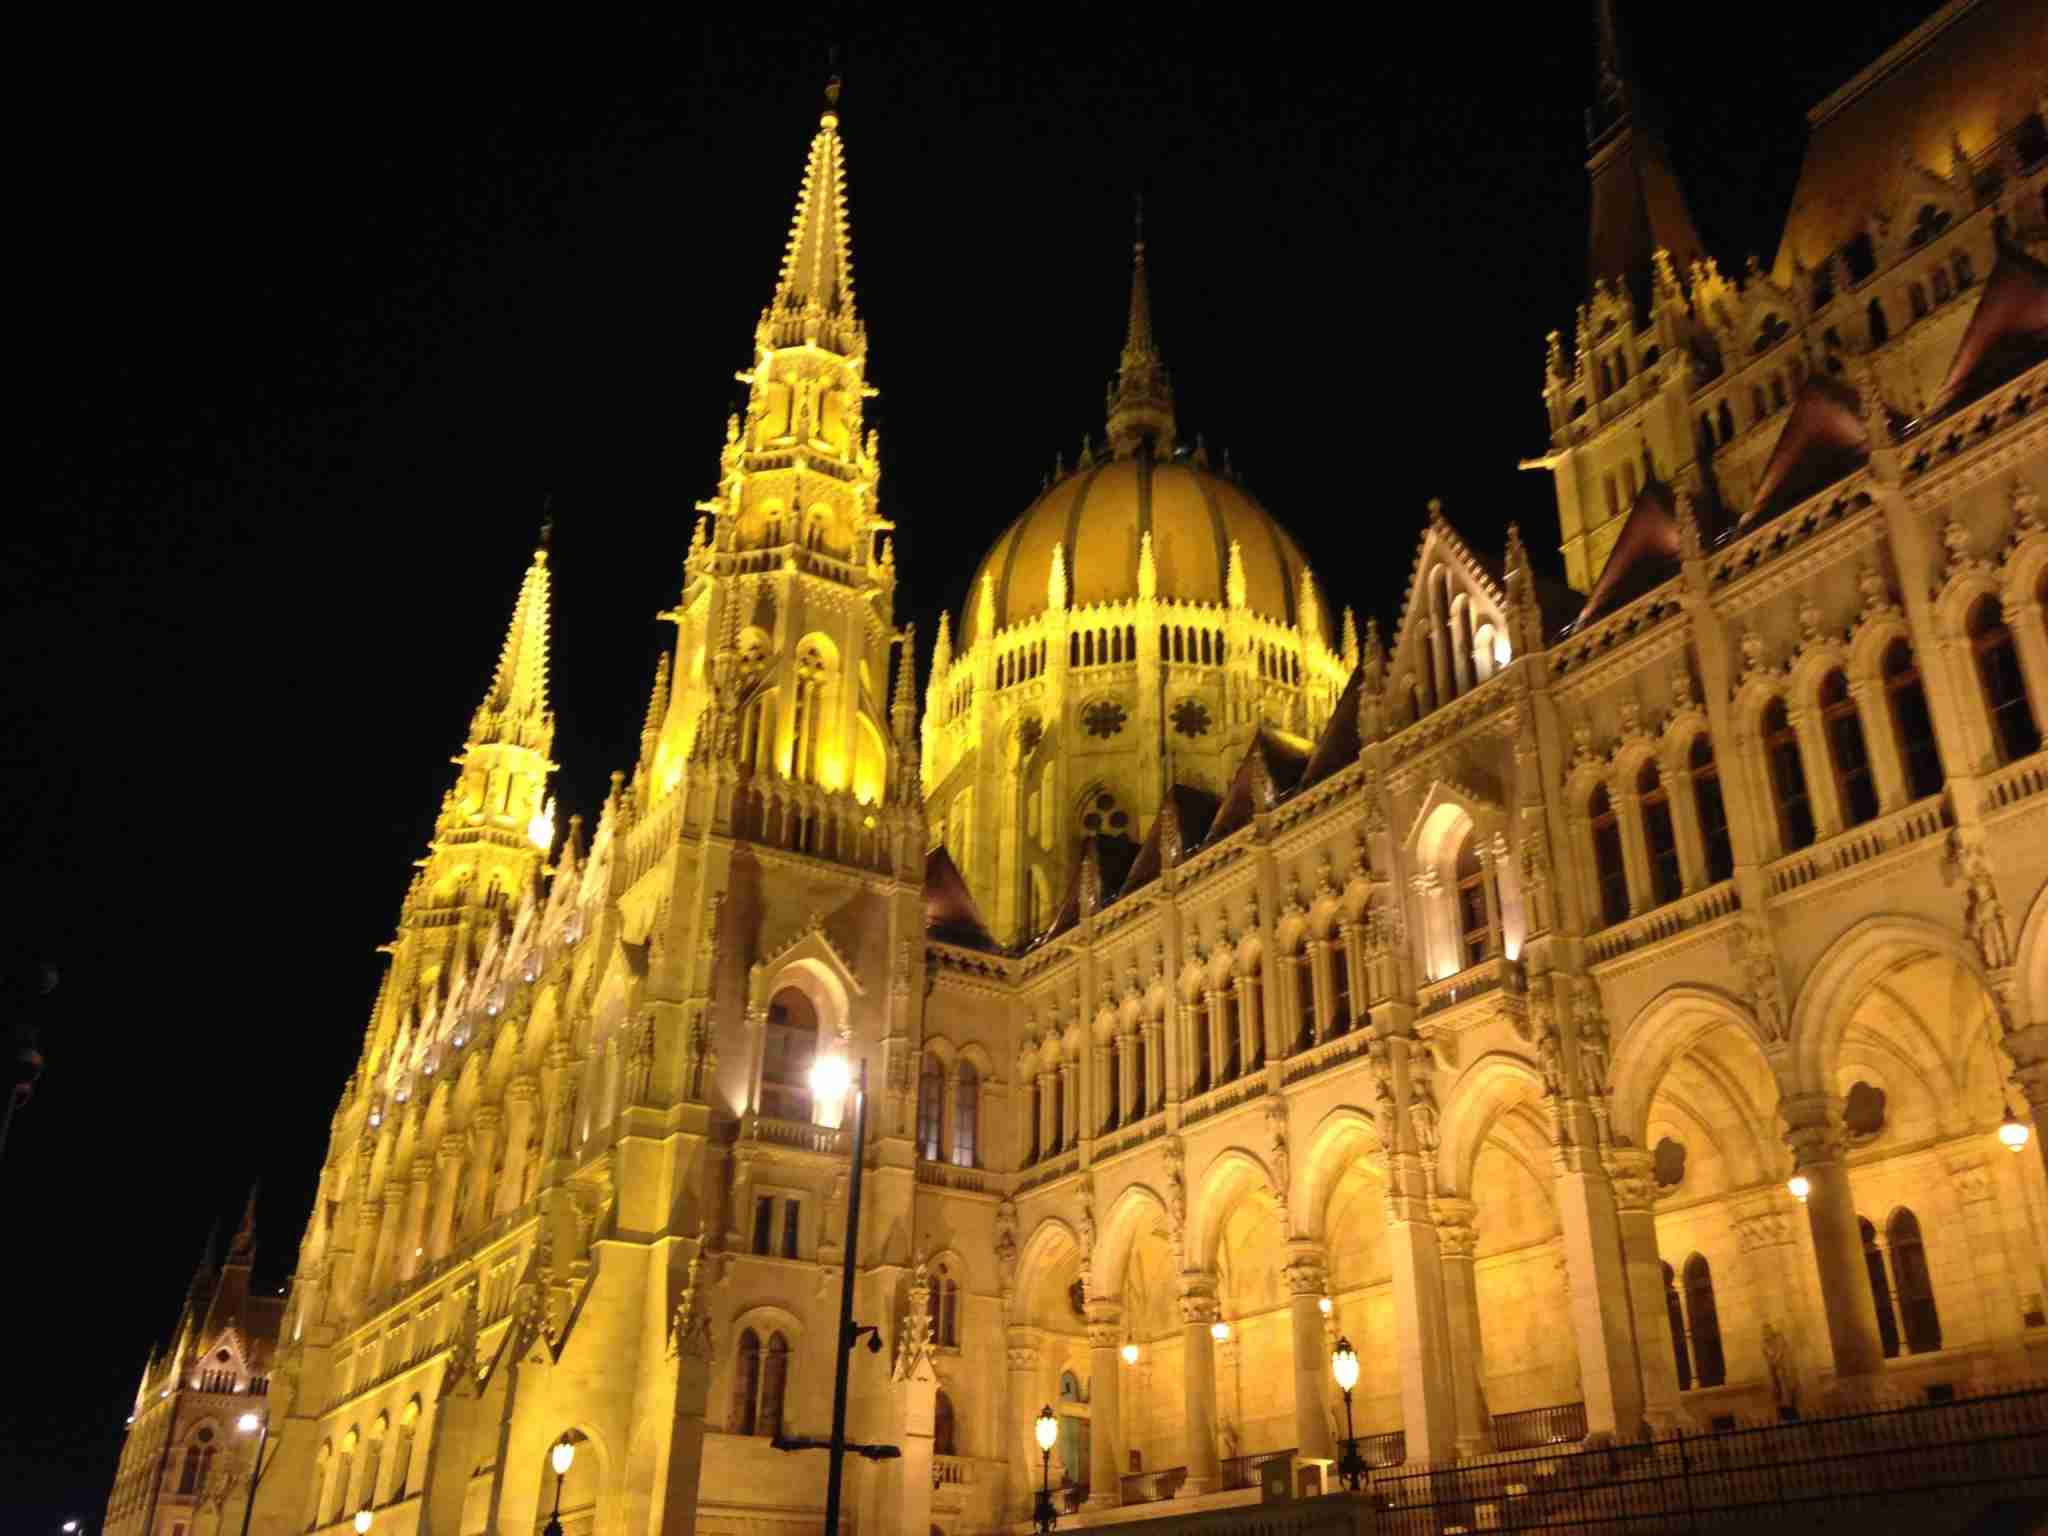 Budapest, Hungary, October 2014. (Photo by Clint Henderson/The Points Guy)